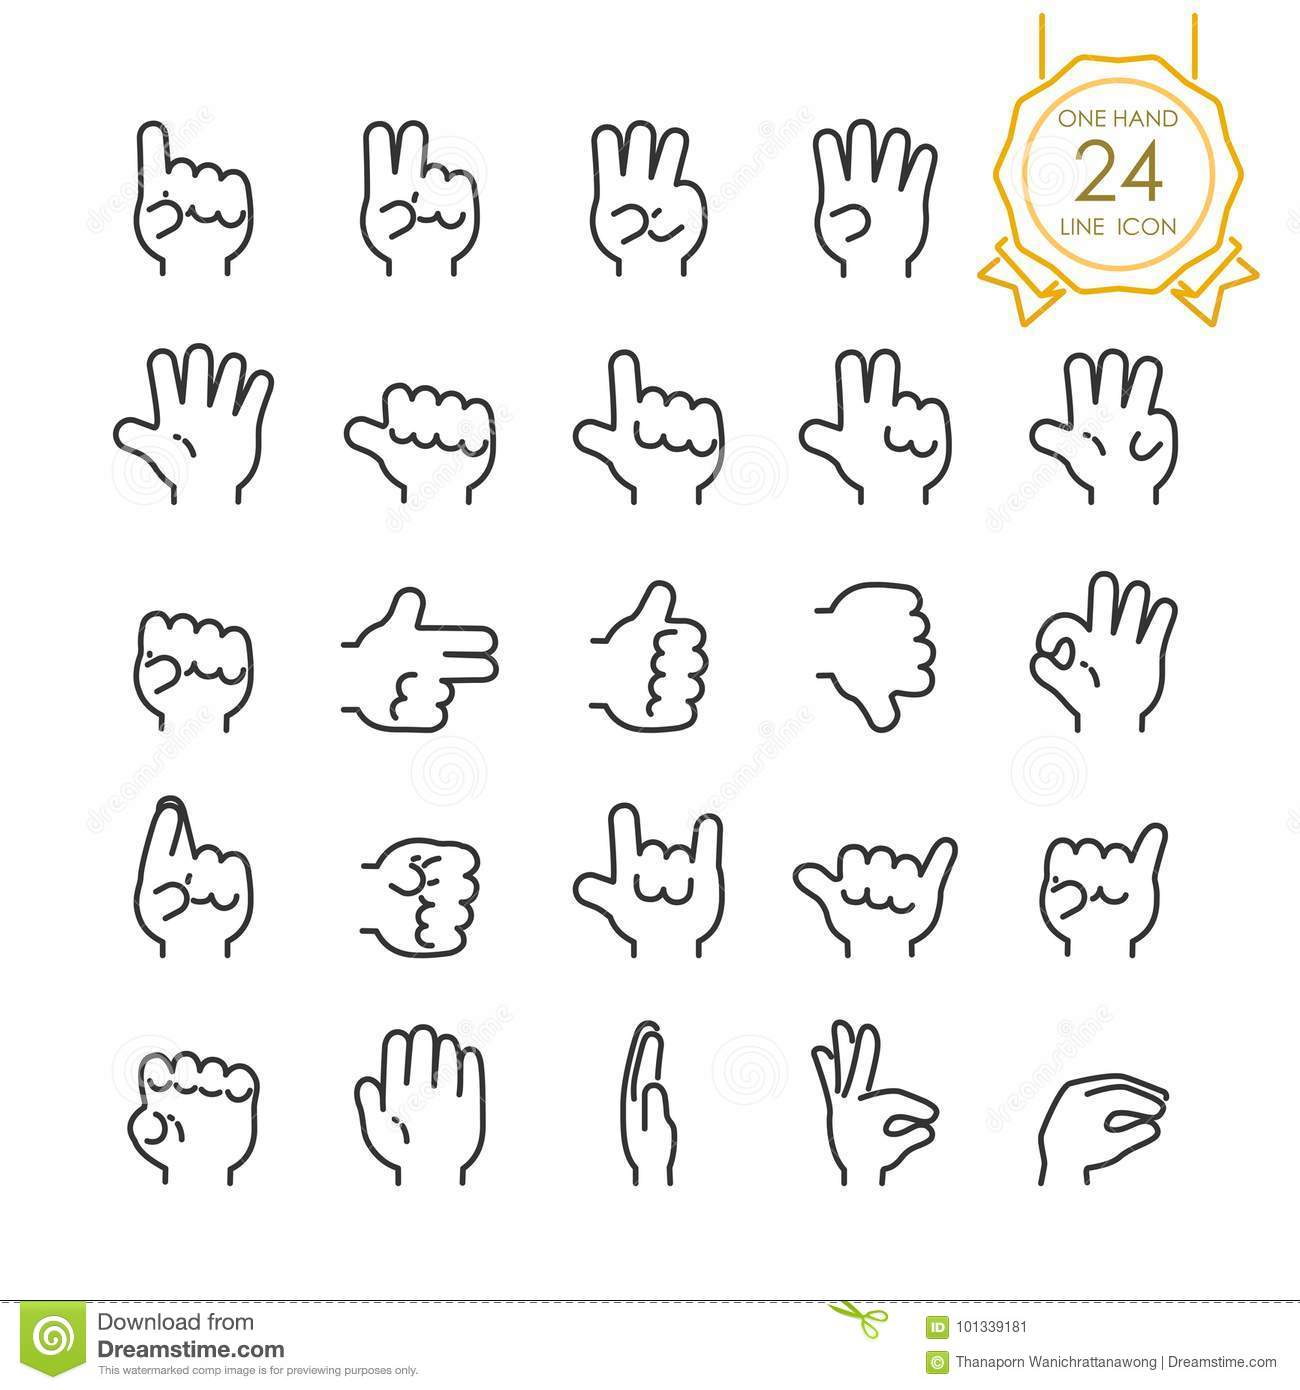 Five Rock Hands Abstract Symbol With Five Point Star